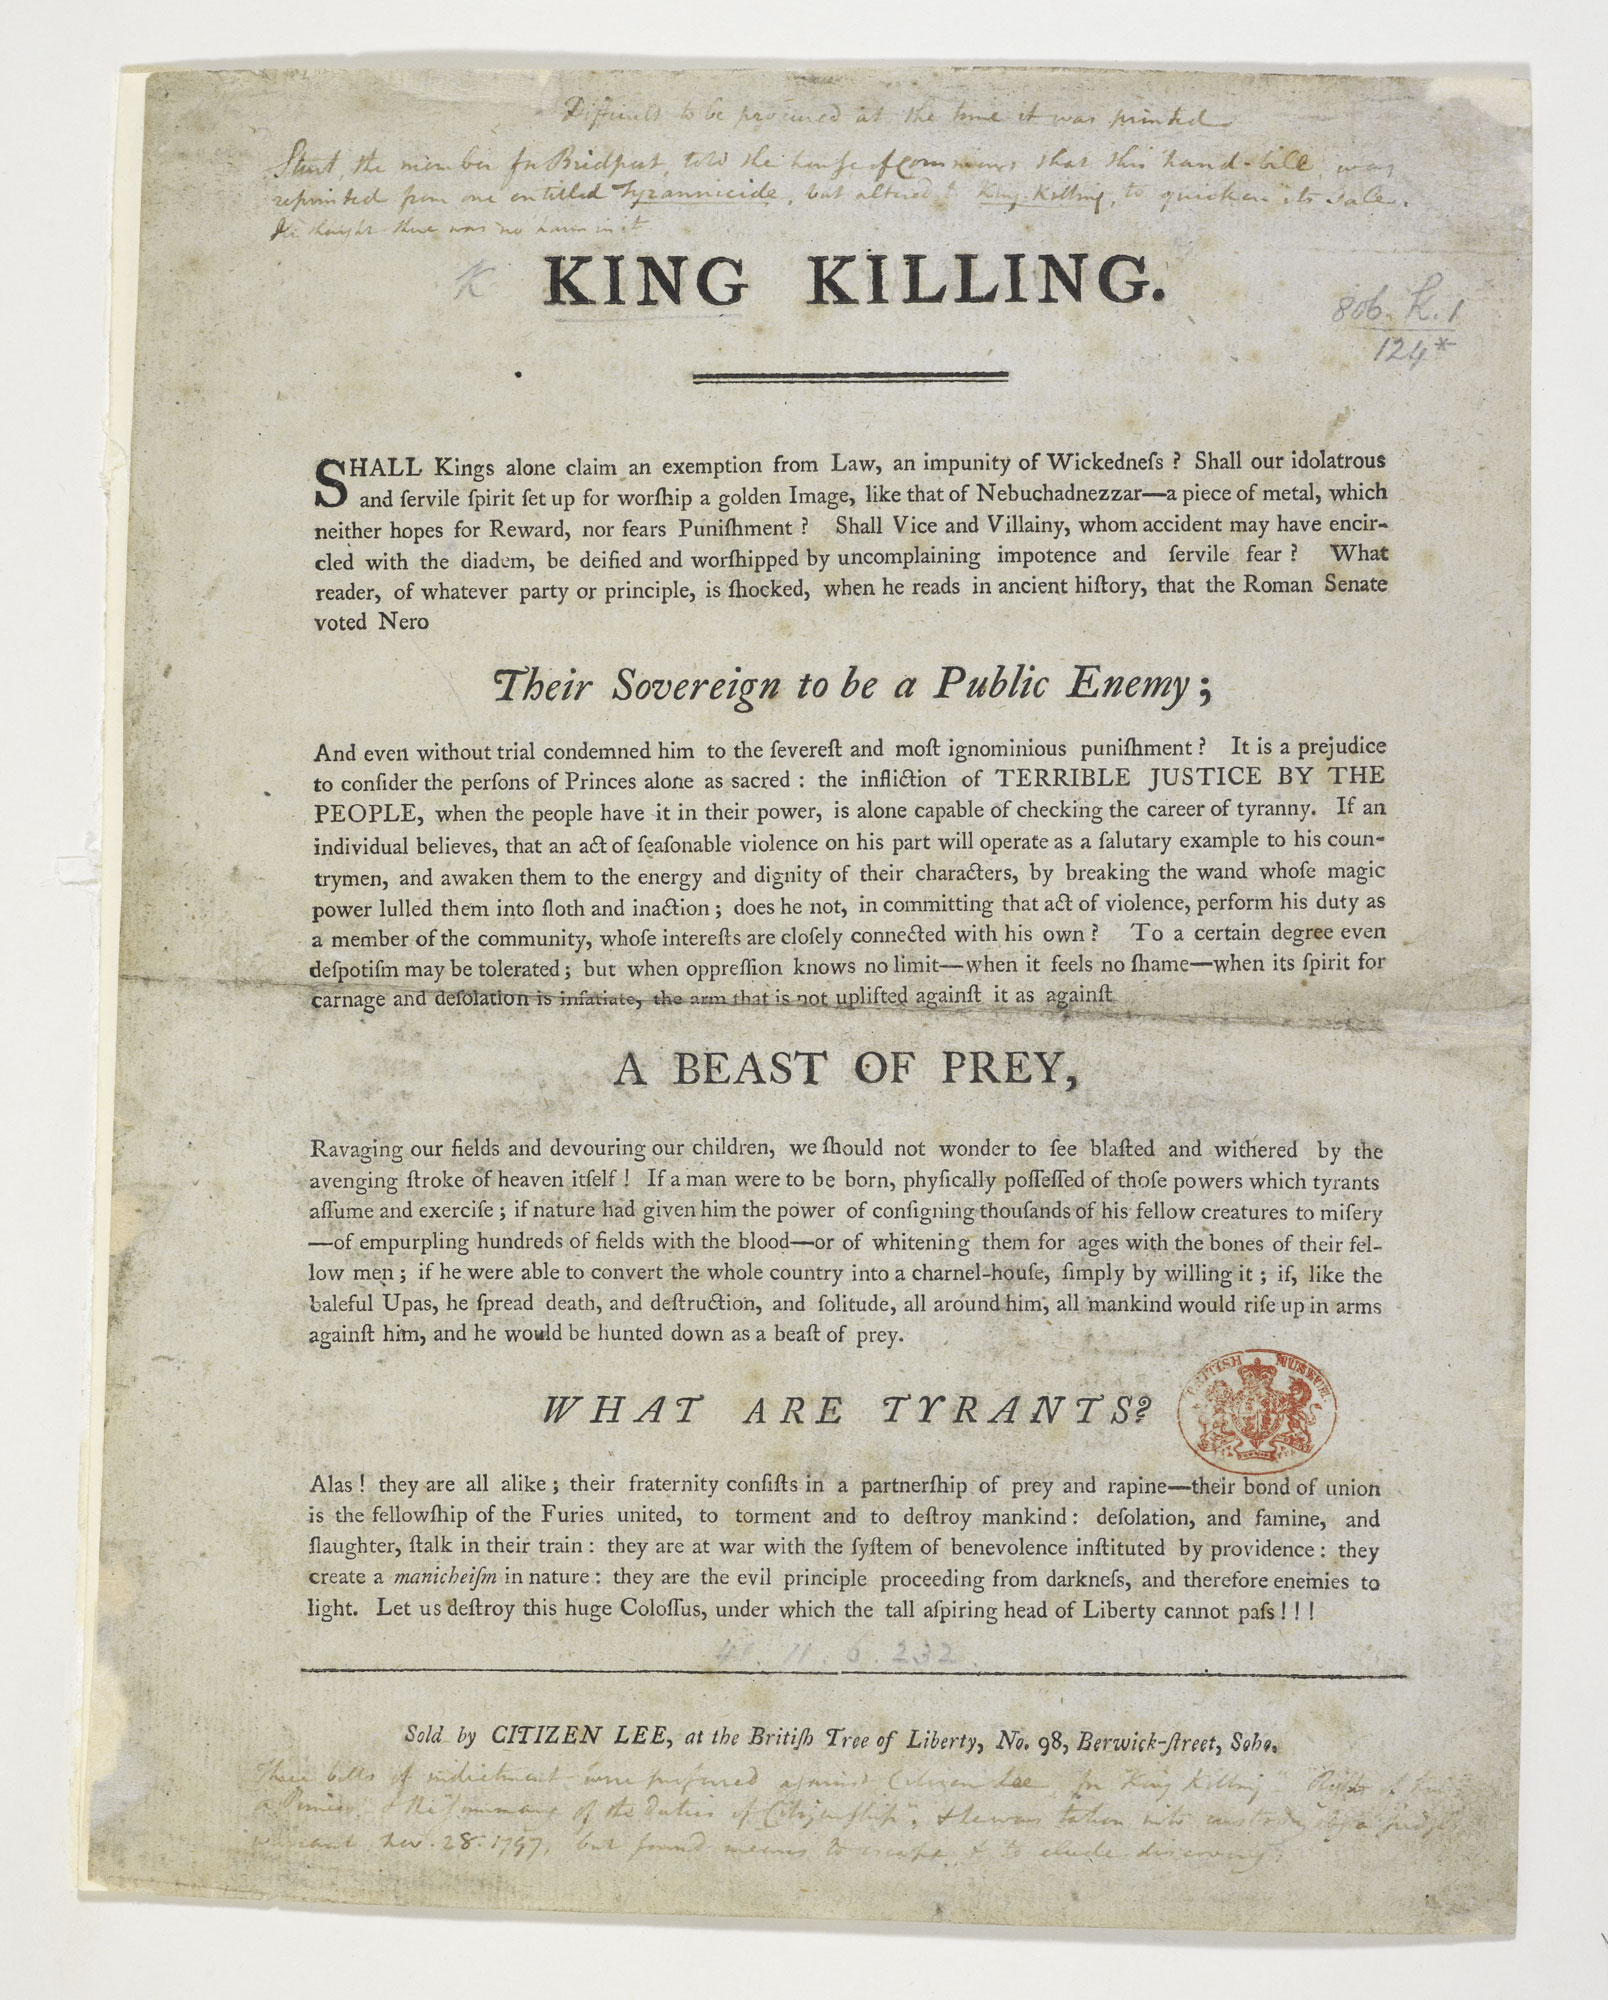 King Killing [page: single sheet]